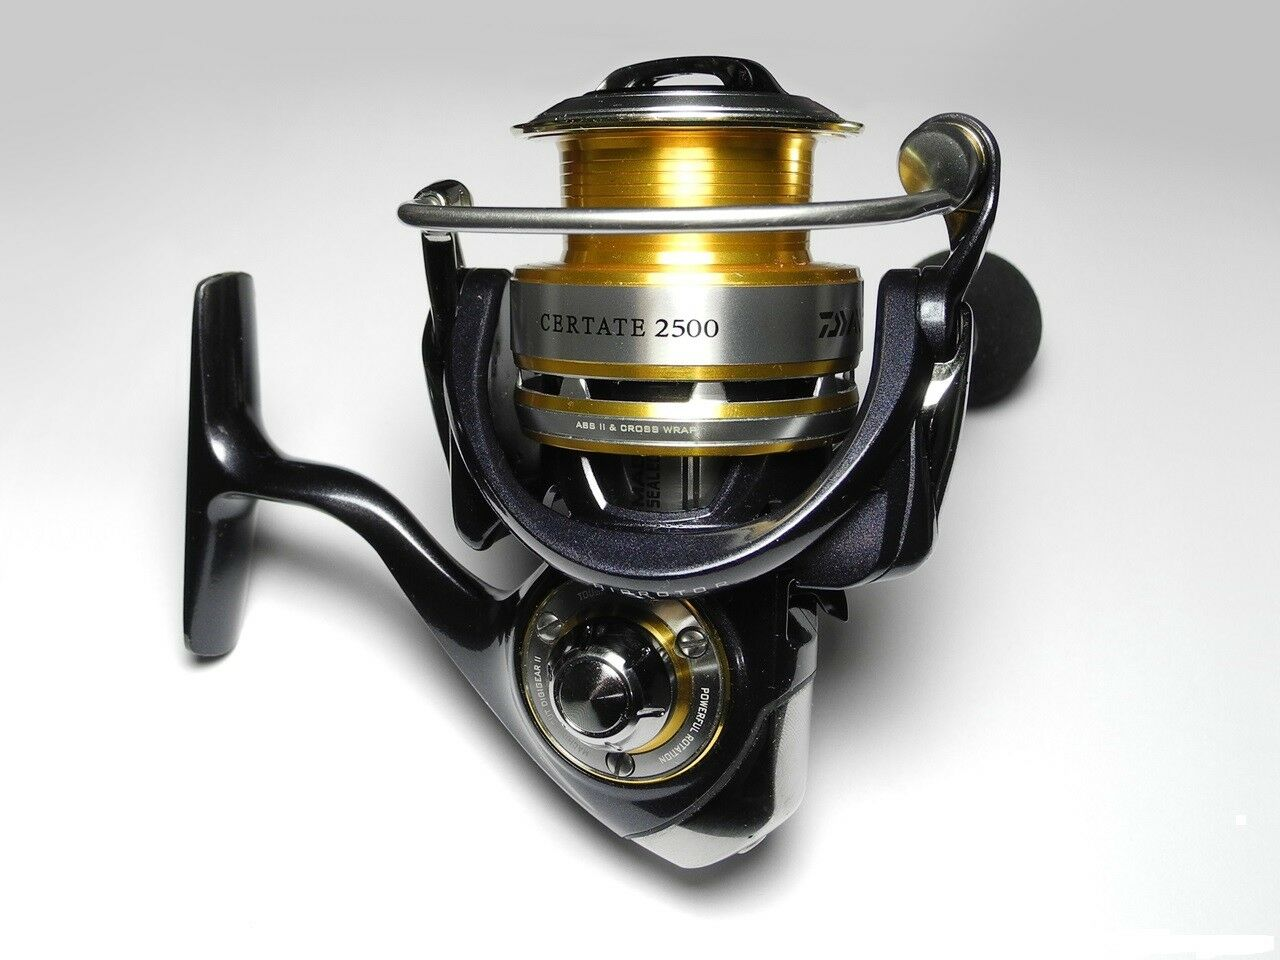 DAIWA Certate 2500 3000HA Mag Sealed Spinning Reel